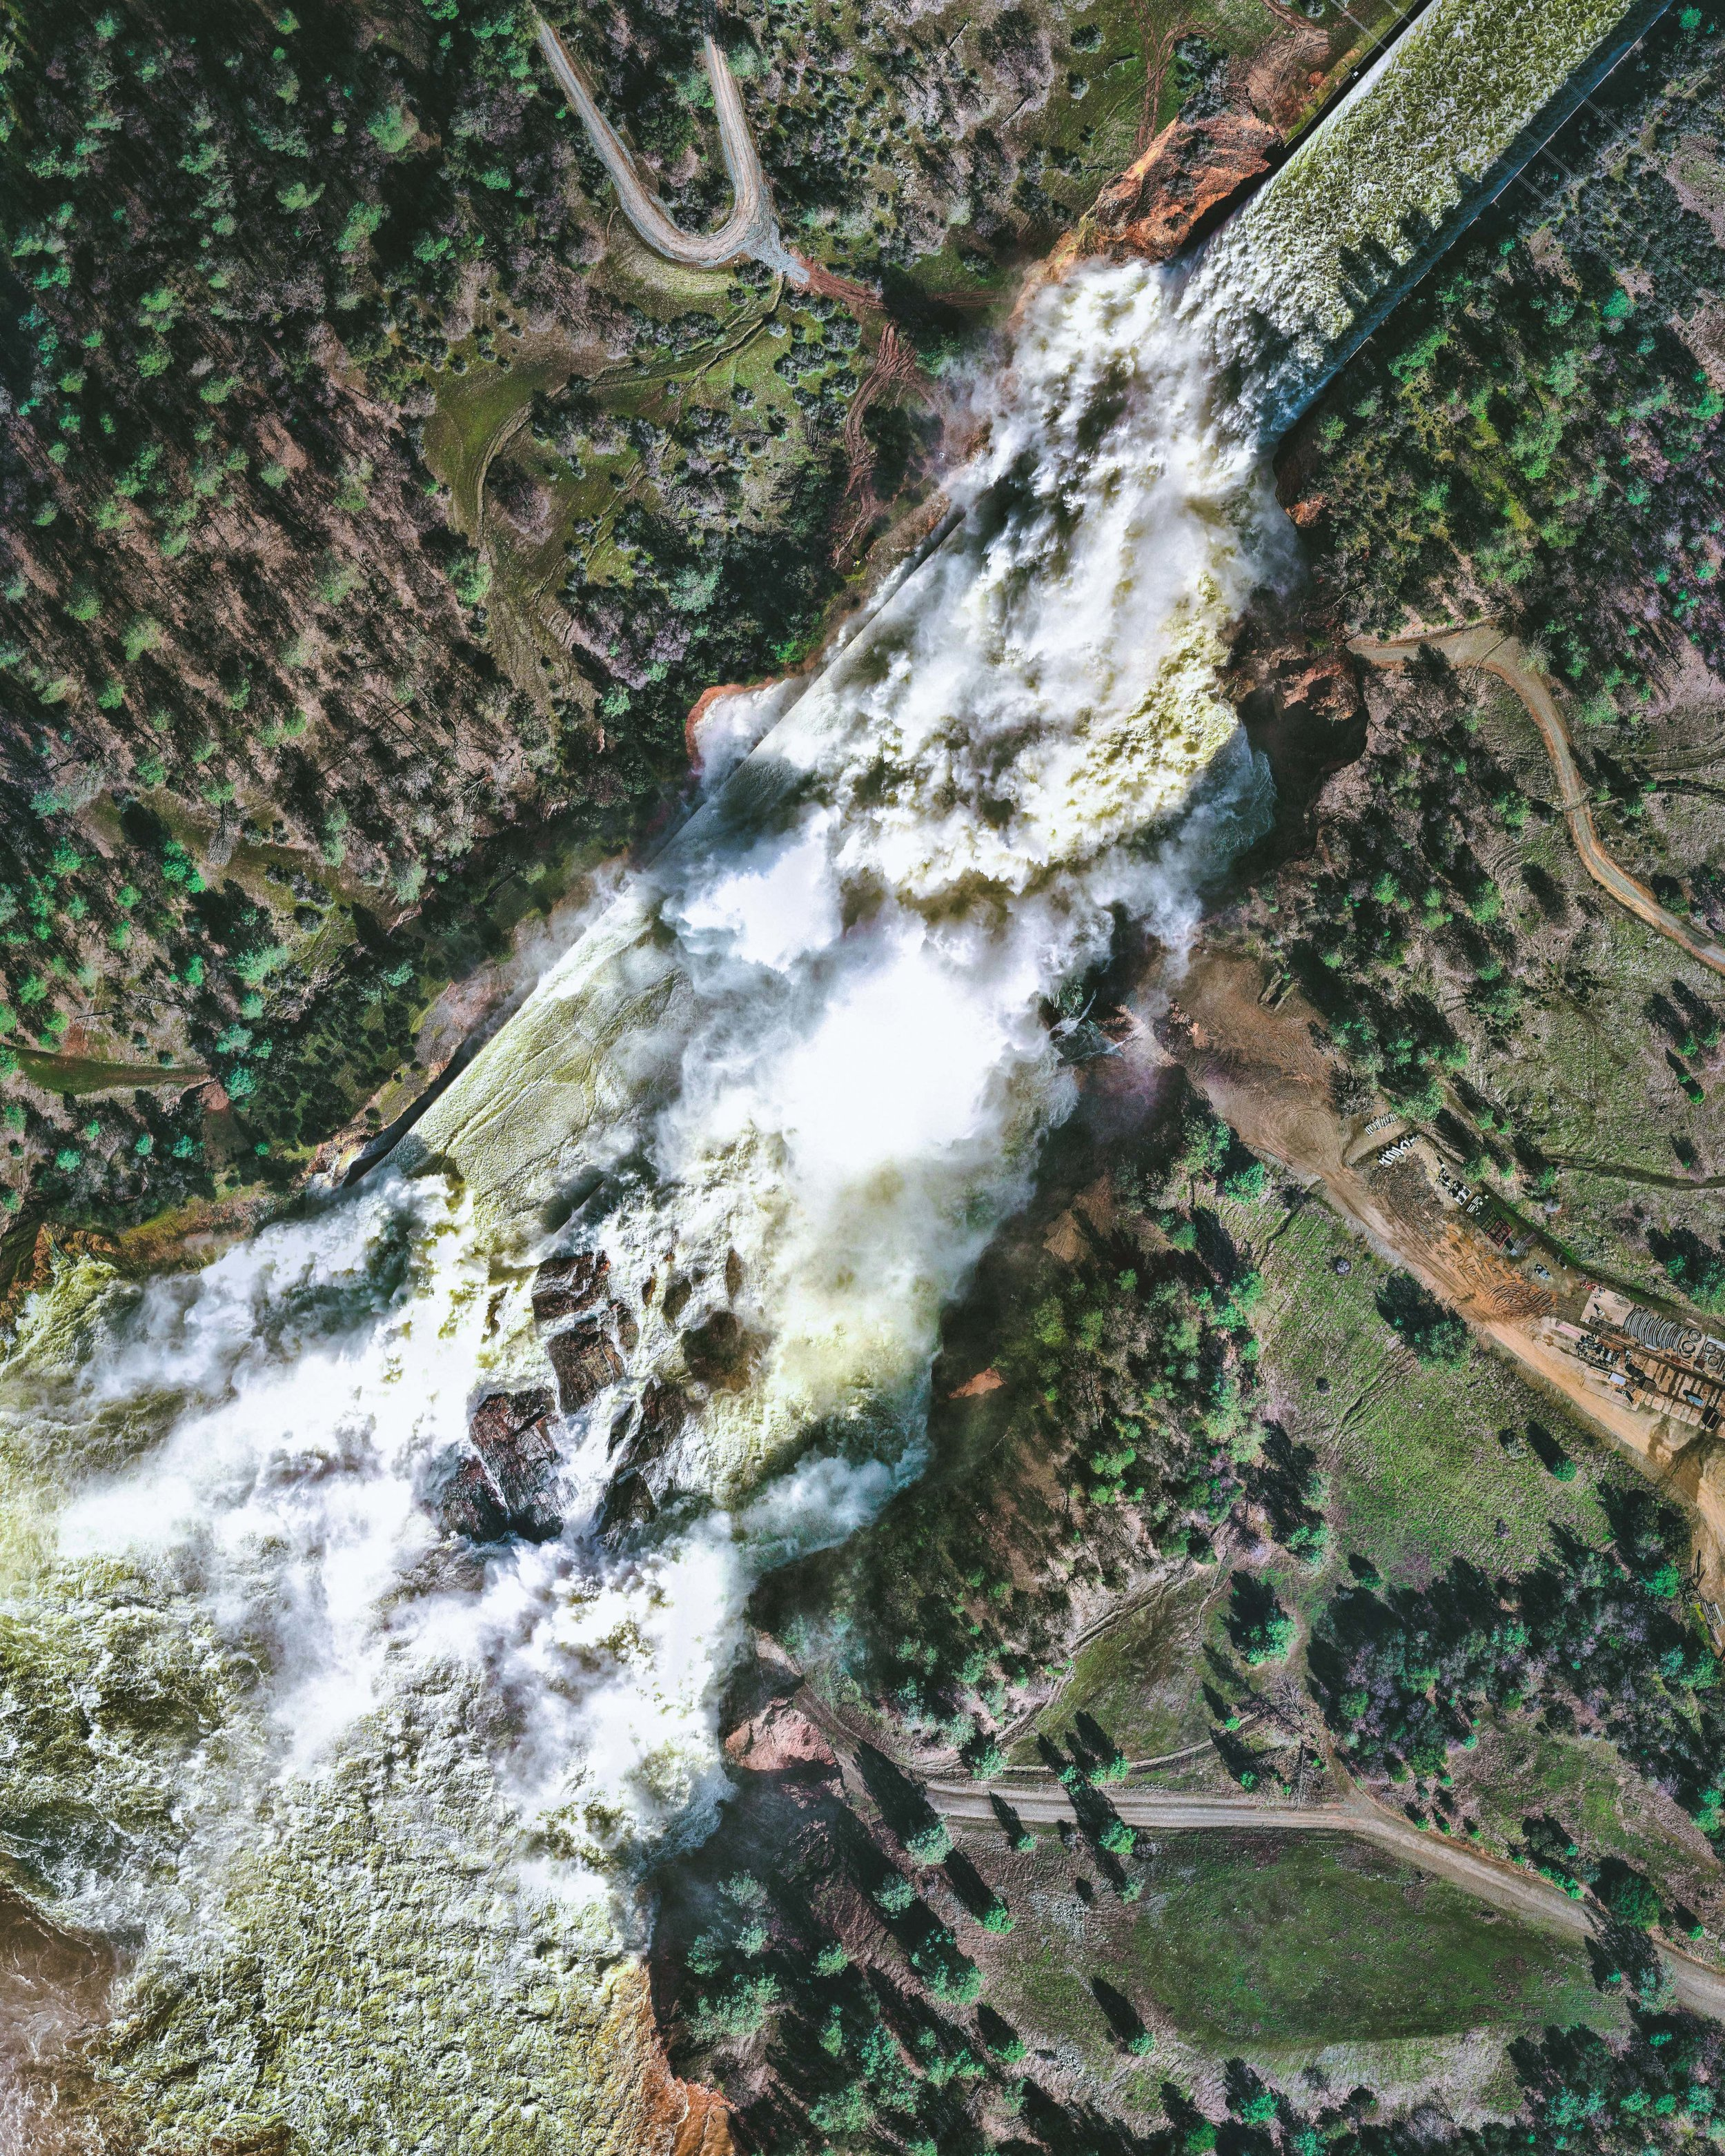 """Water rushes down the main spillway of the Oroville Dam, located on the Feather River in northern California. At 770 feet high (235m), the dam is the tallest in the United States and serves mainly for water supply, hydroelectricity generation, and flood control. Amid heavy rainfall in February 2017, this spillway was significantly damaged and more than 180,000 people living downstream were evacuated.  39°32'21.2""""N, 121°29'48.6""""W  Source imagery: Nearmap"""